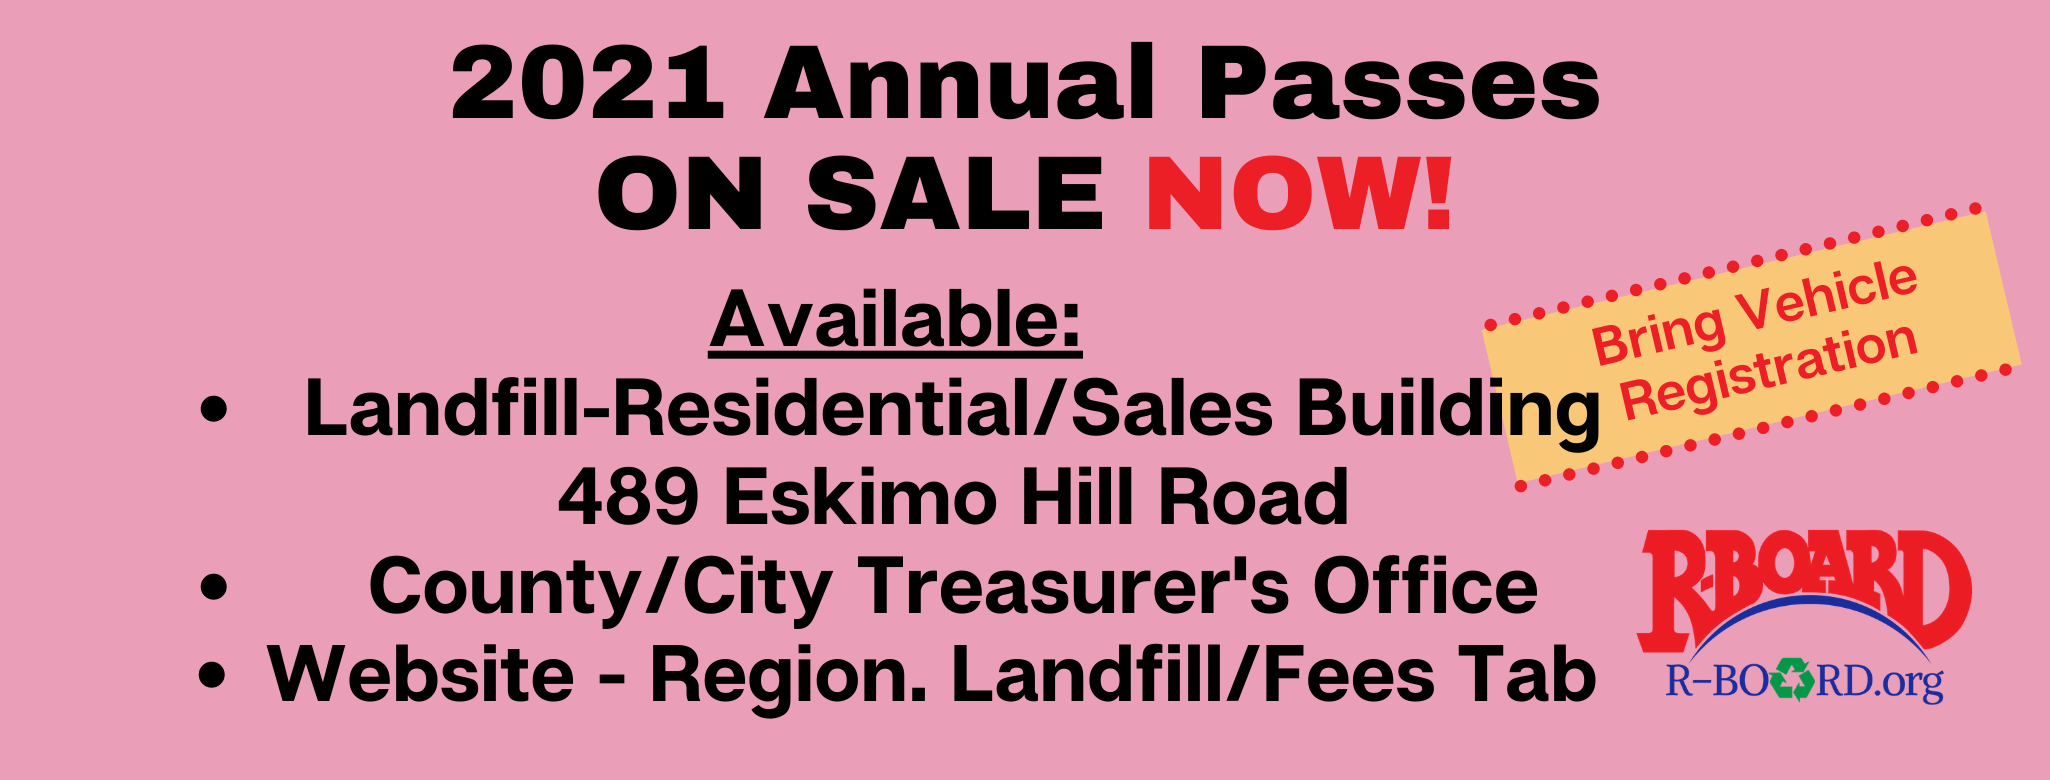 2021 Annual Passes On Sale Now